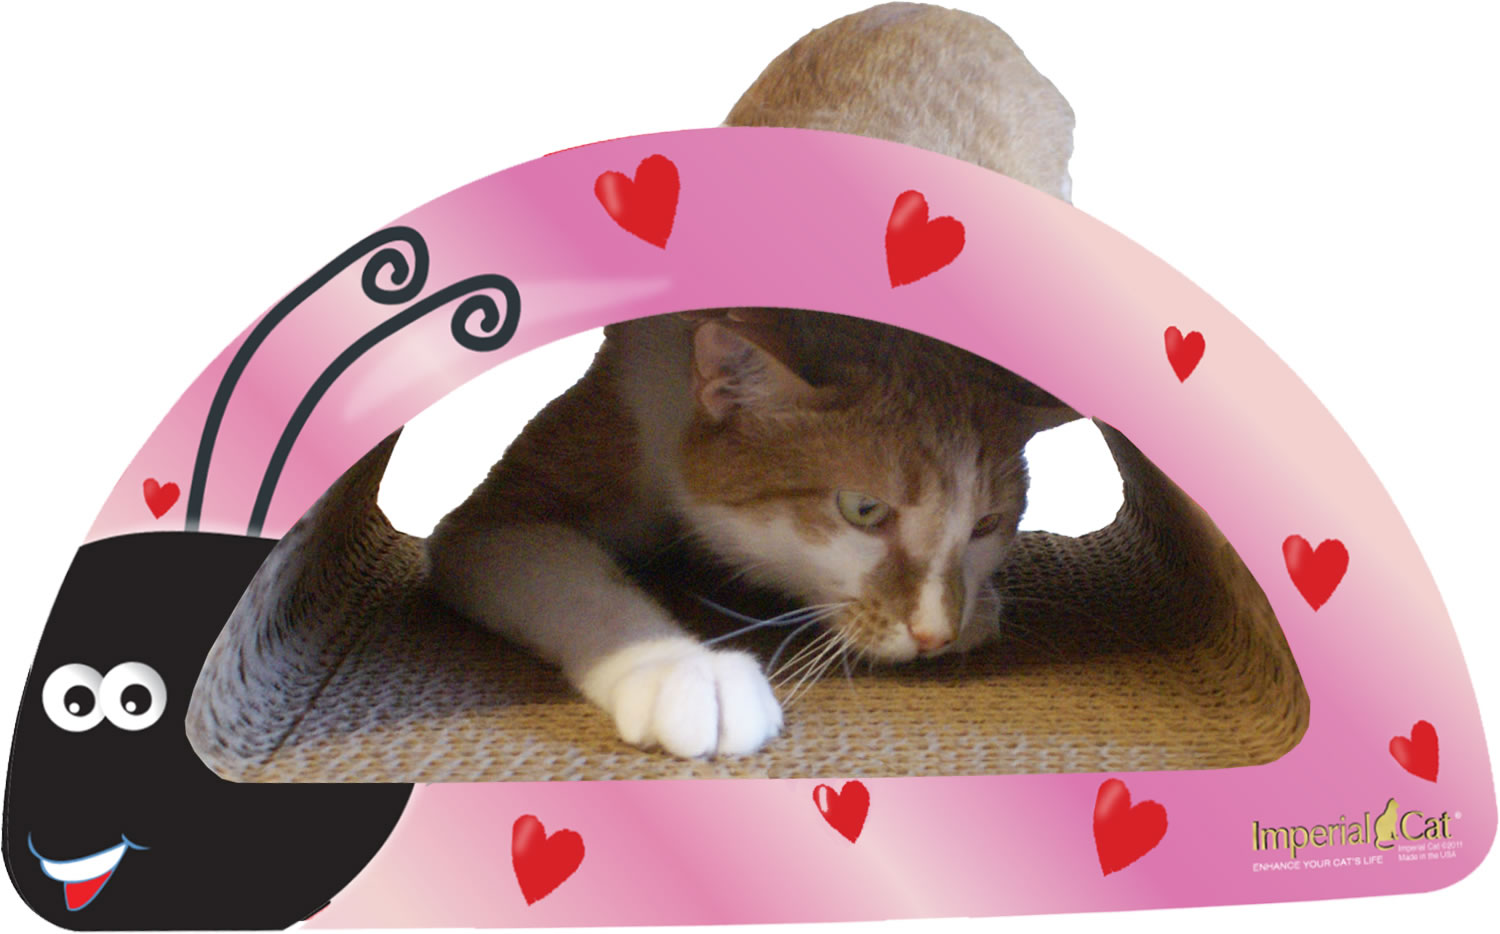 Imperial Cat  Happy Valentines's Day Cat Kit Giveaway